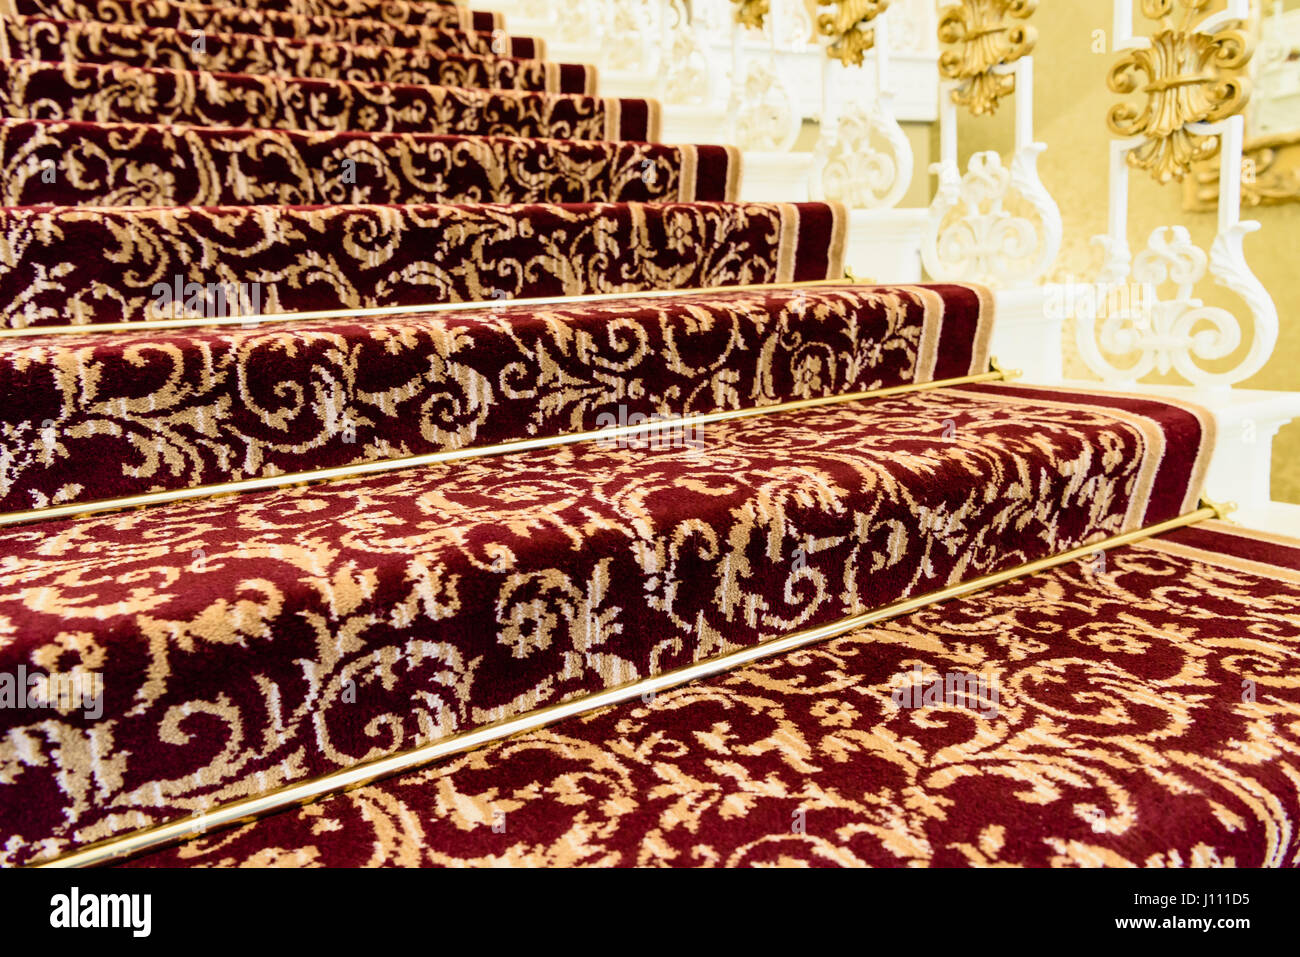 Brass Stairrods Holding Down Red Patterened Axminster Carpet On The Stairs  Of A Posh House.